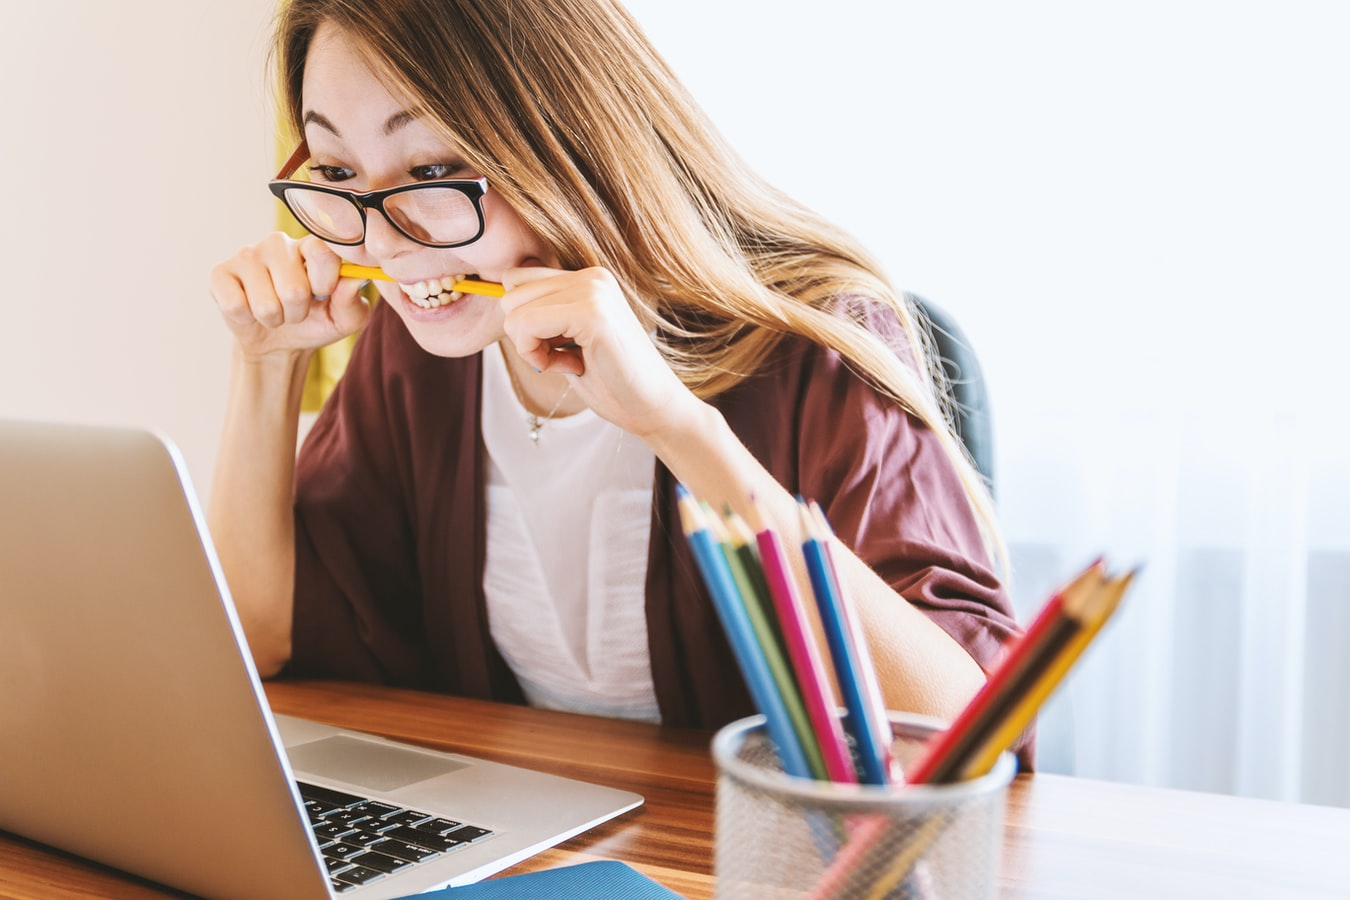 Woman biting on yellow pencil looking at laptop